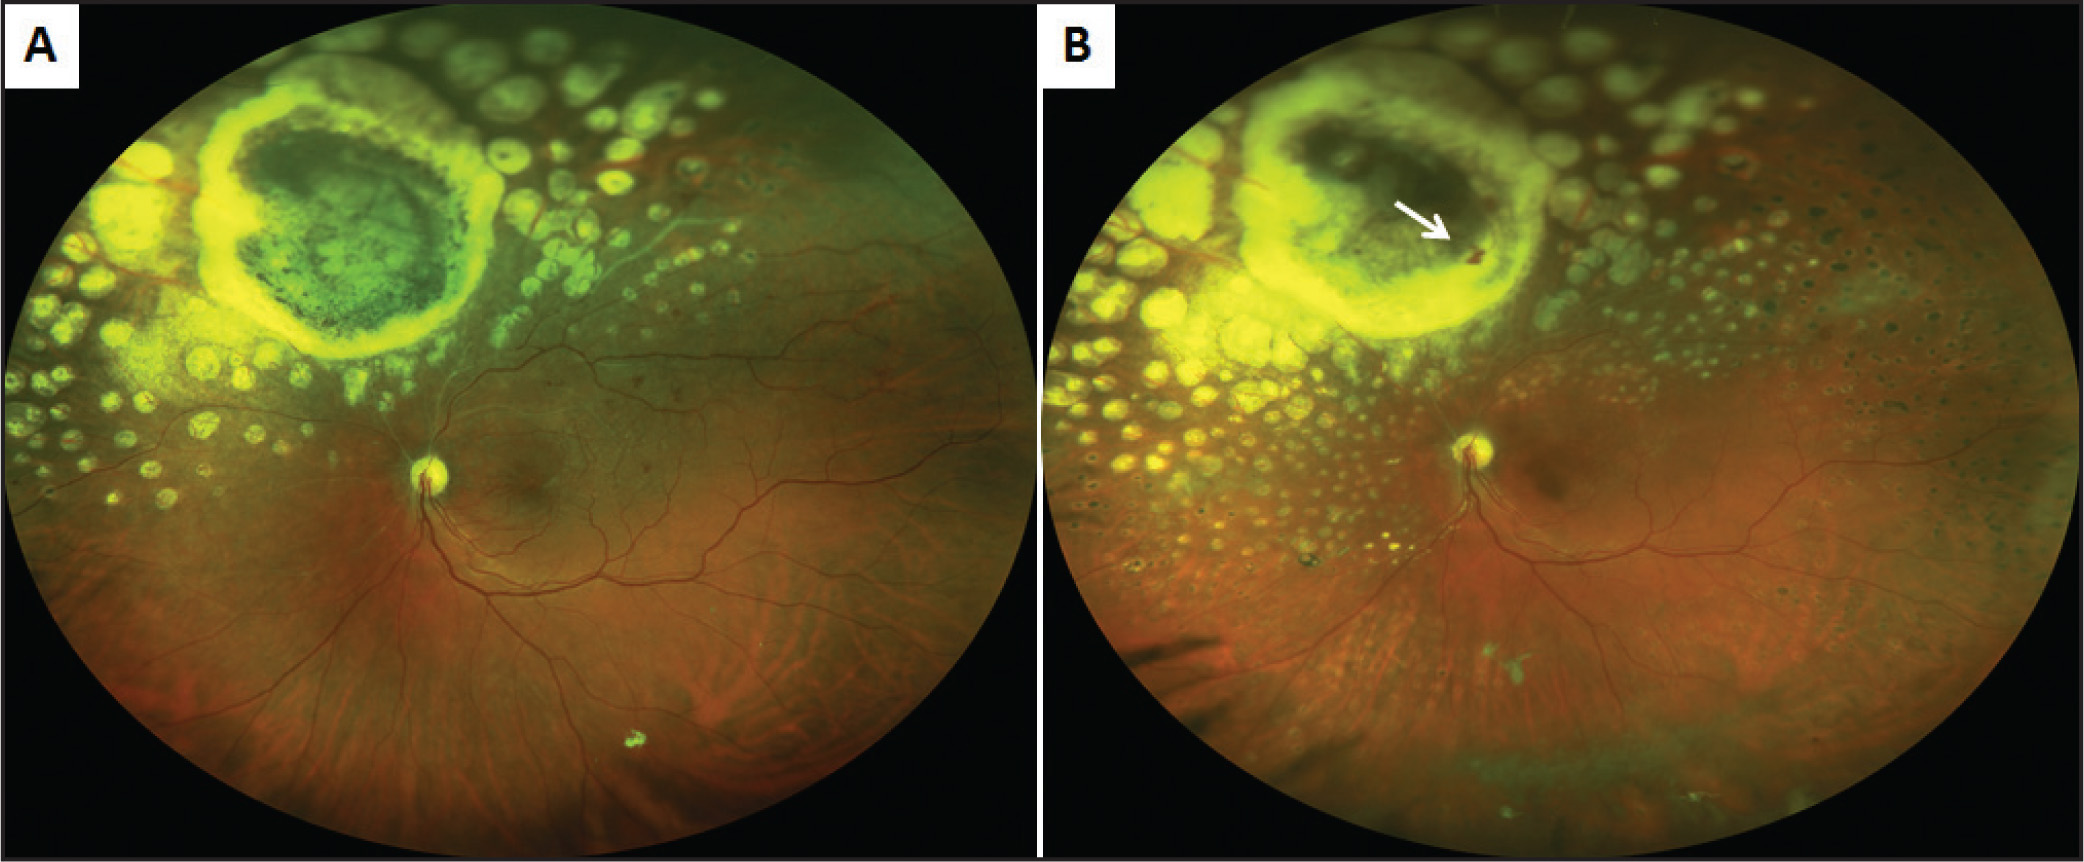 Ultrawide-field color fundus photographs of the left eye. (A) Color fundus photograph taken 3 years prior to presentation showing the regressed choroidal melanoma with chorioretinal scarring superonasal to the optic nerve. There is no neovascularization within the scar. Sectoral panretinal photocoagulation scars extend slightly beyond the superonasal quadrant. (B) Color fundus photograph taken at presentation showing visible new vessels (white arrow) within the site of the regressed choroidal melanoma, with chorioretinal scarring superonasal to the optic nerve. There are panretinal photocoagulation scars throughout the posterior pole in all quadrants, and dehemoglobinised vitreous hemorrhage is visible in the inferior vitreous cavity.